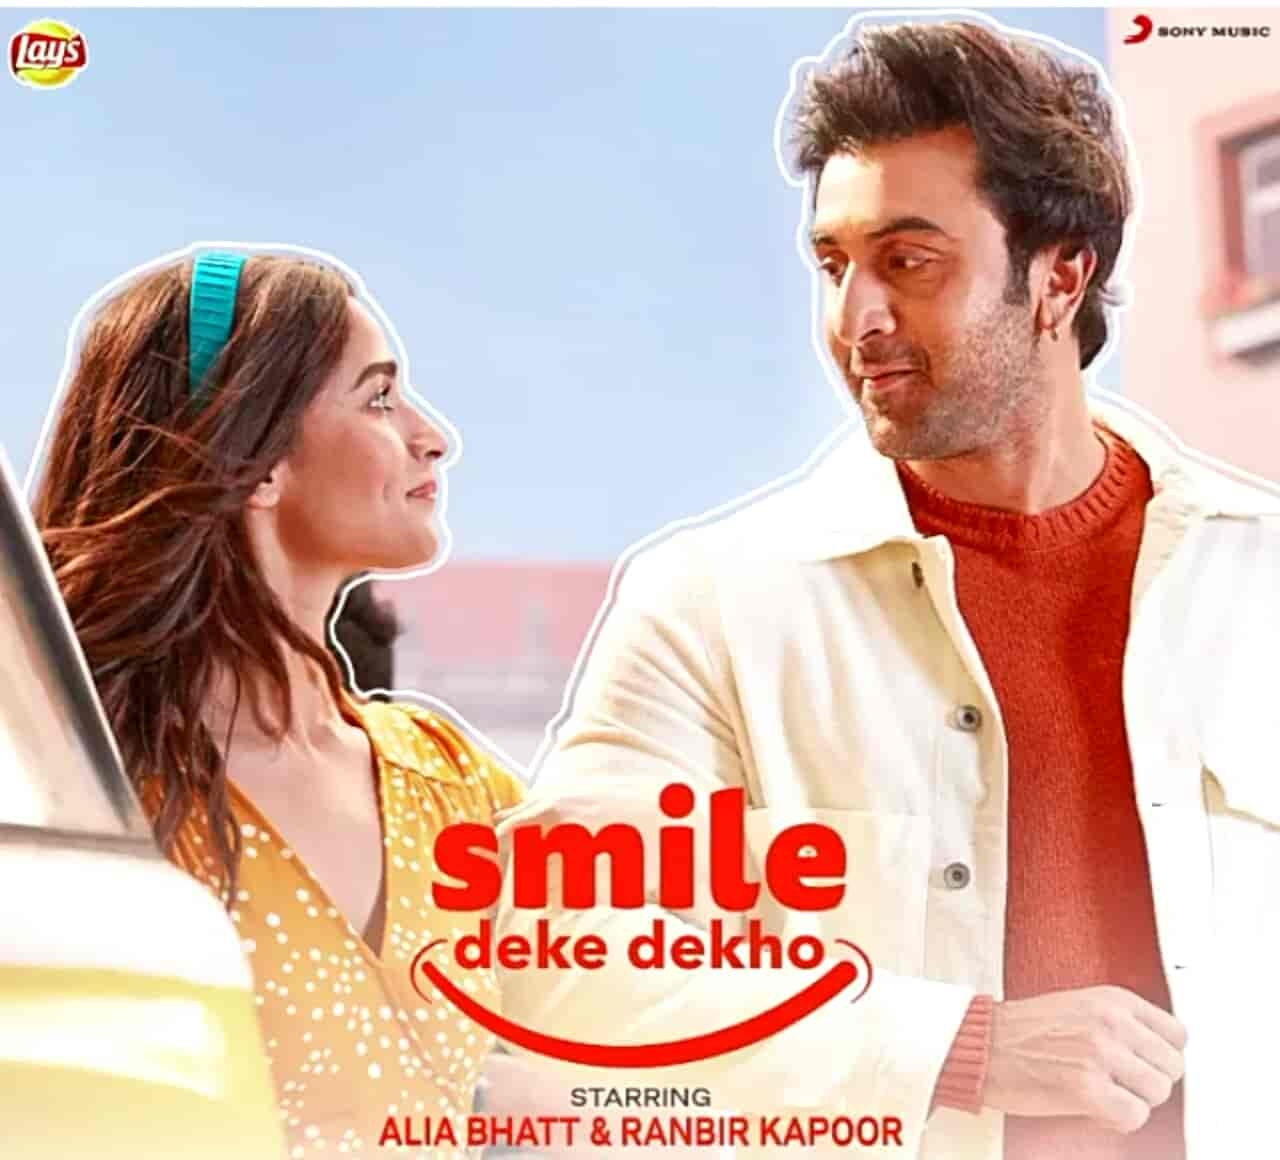 Smile Deke Dekho Lyrics Images Alia Bhatt and Ranbir Kapoor